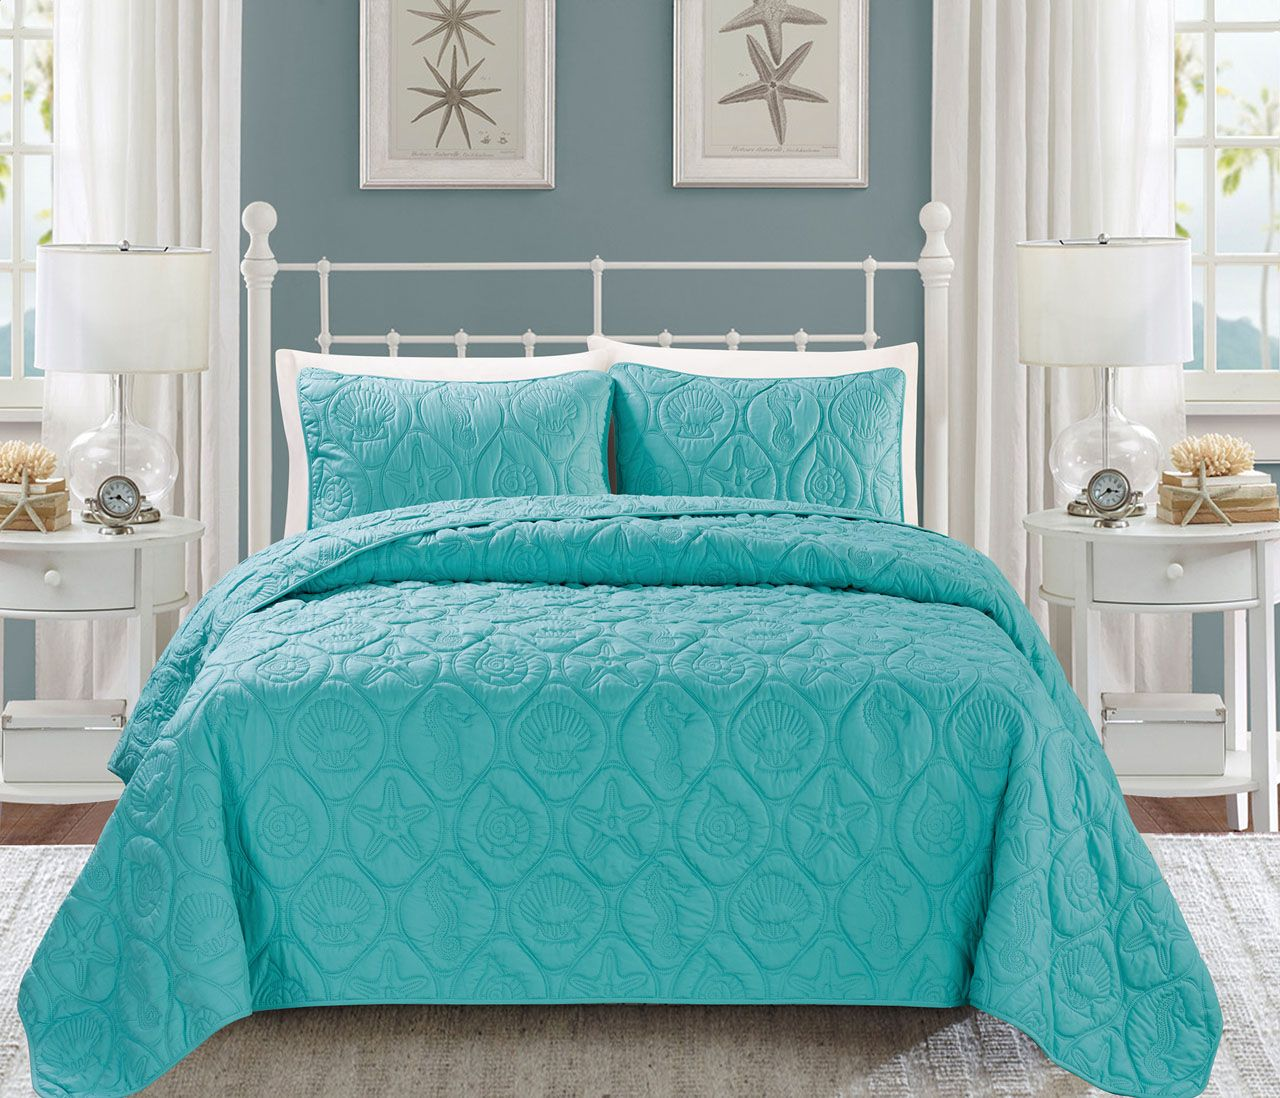 Seashell Spa Blue Reversible Bedspread/Quilt Set | Master bedroom ... : teal quilt bedding - Adamdwight.com